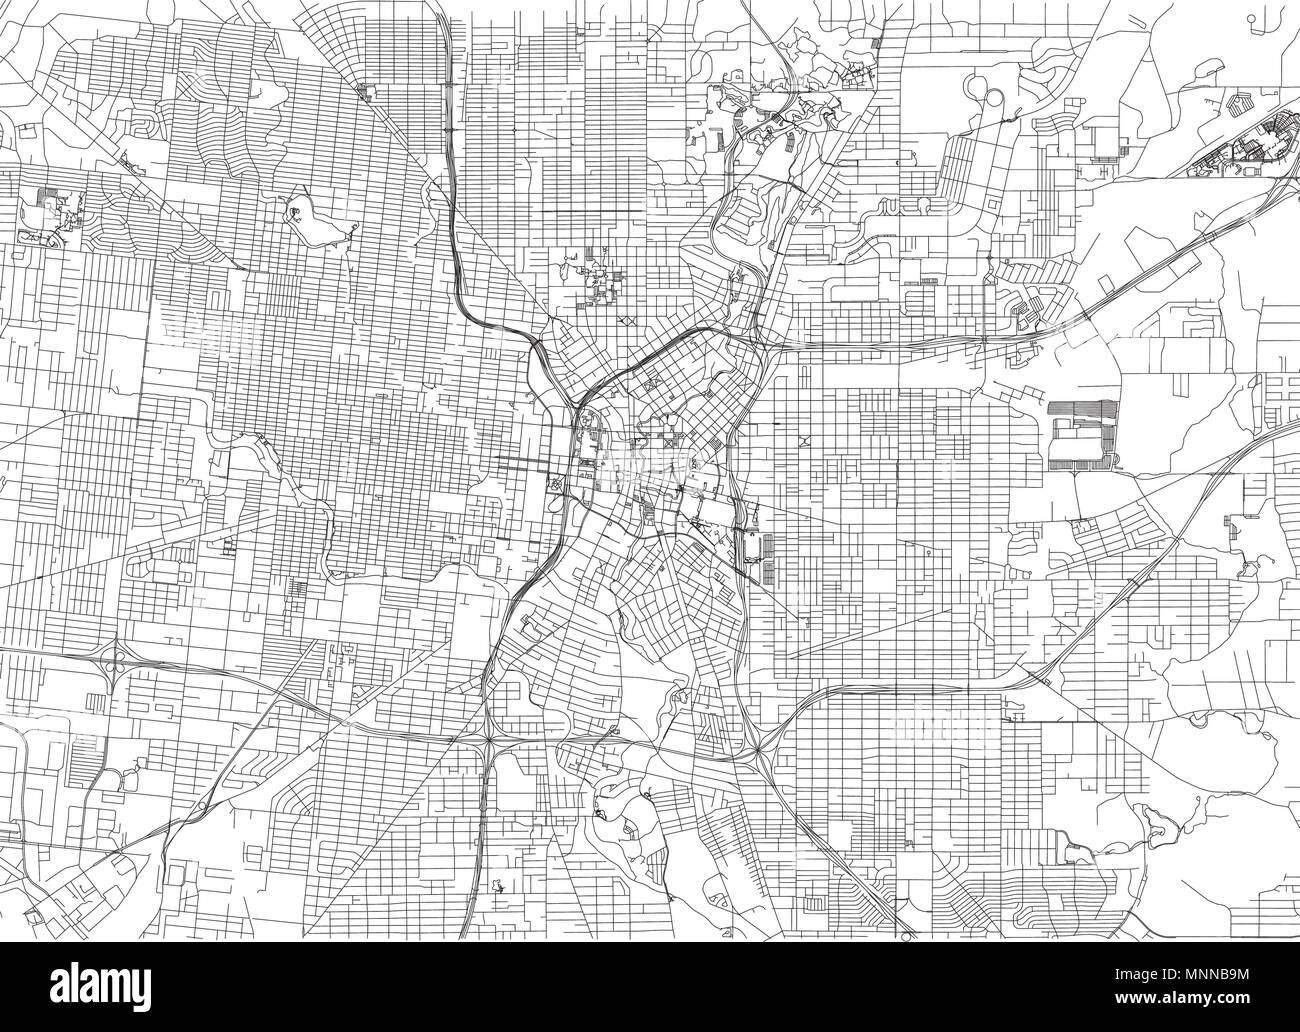 City Map Of Texas.Streets Of San Antonio City Map Texas Roads And Urban Area